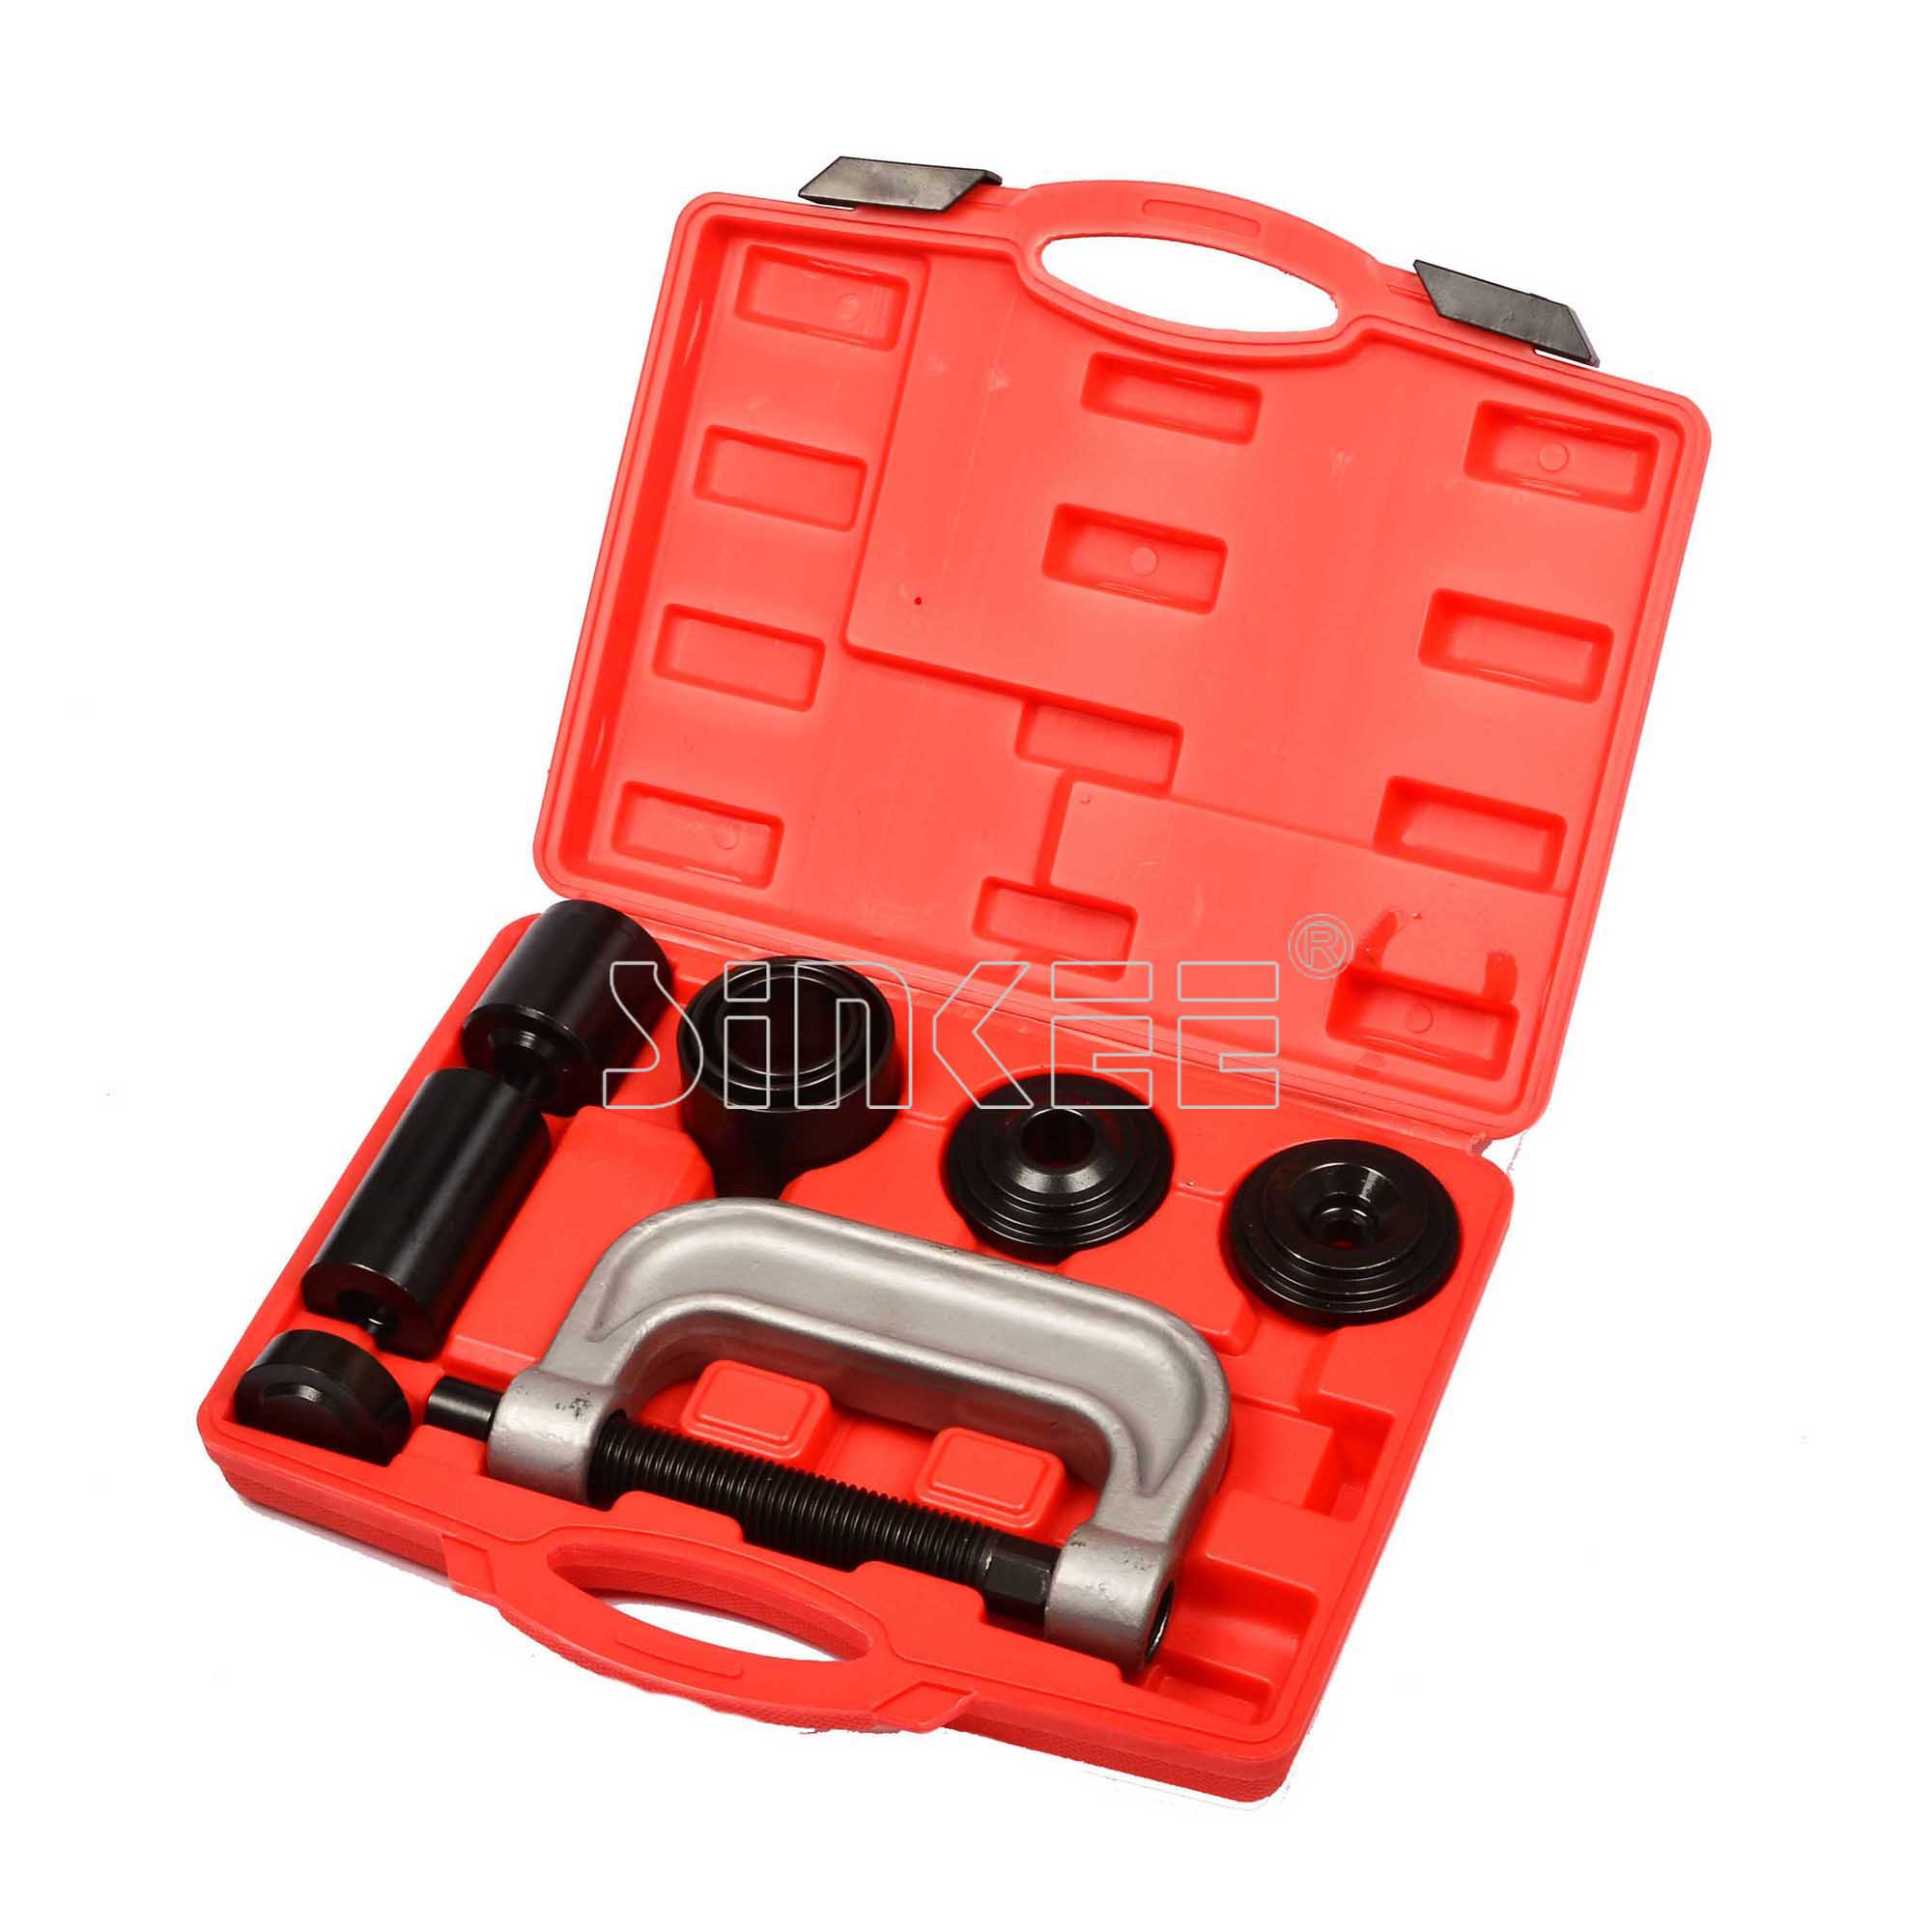 4-in-1 Ball Joint Service Tool Kit C Frame Press 2WD & 4WD Vehicles Truck Brake Anchor Pin Remover Installer SK1151